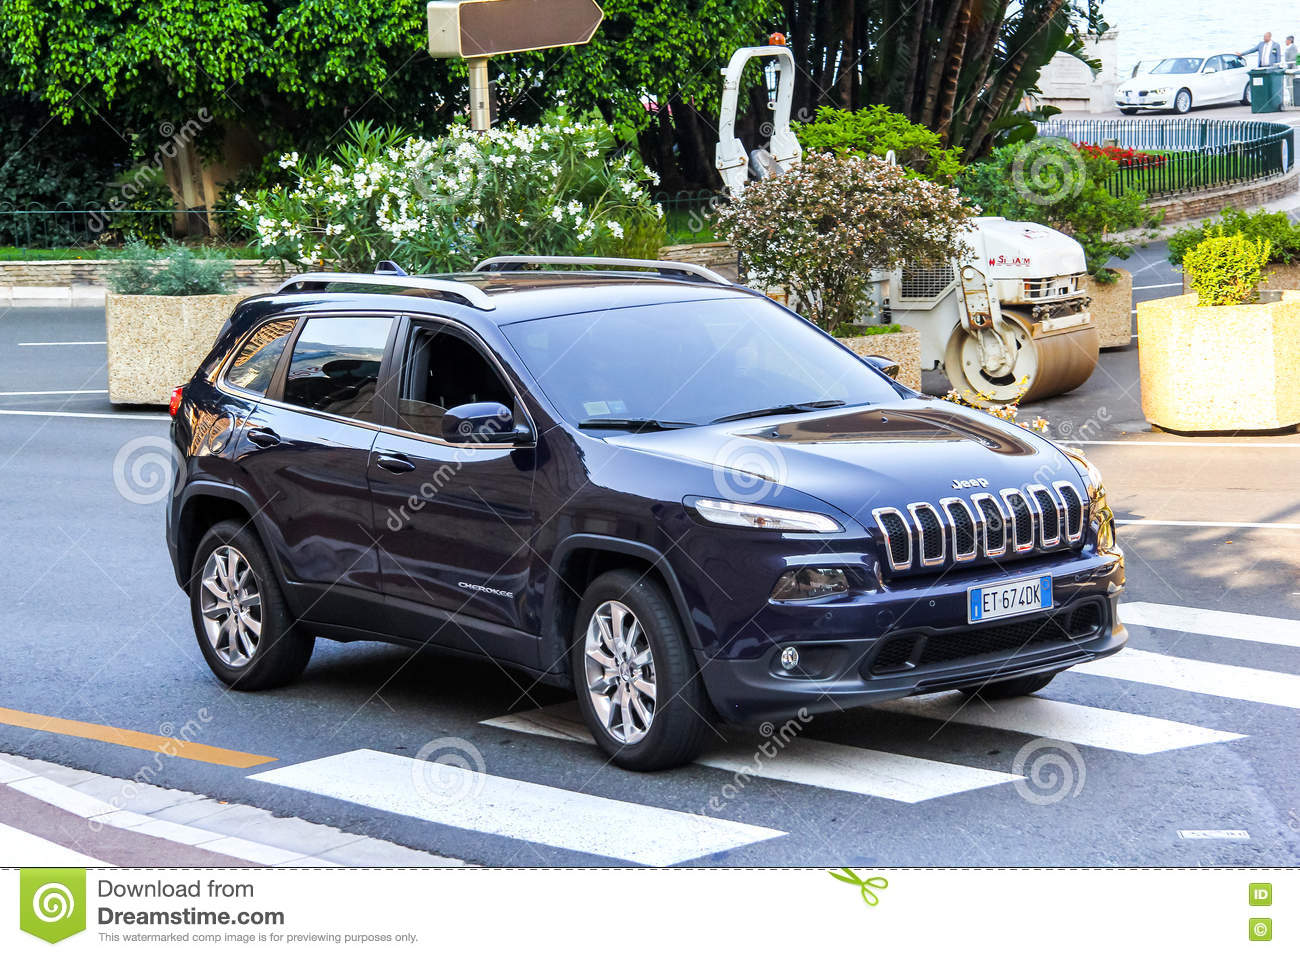 Jeep cherokee editorial photo 71147867 Motor city car sales